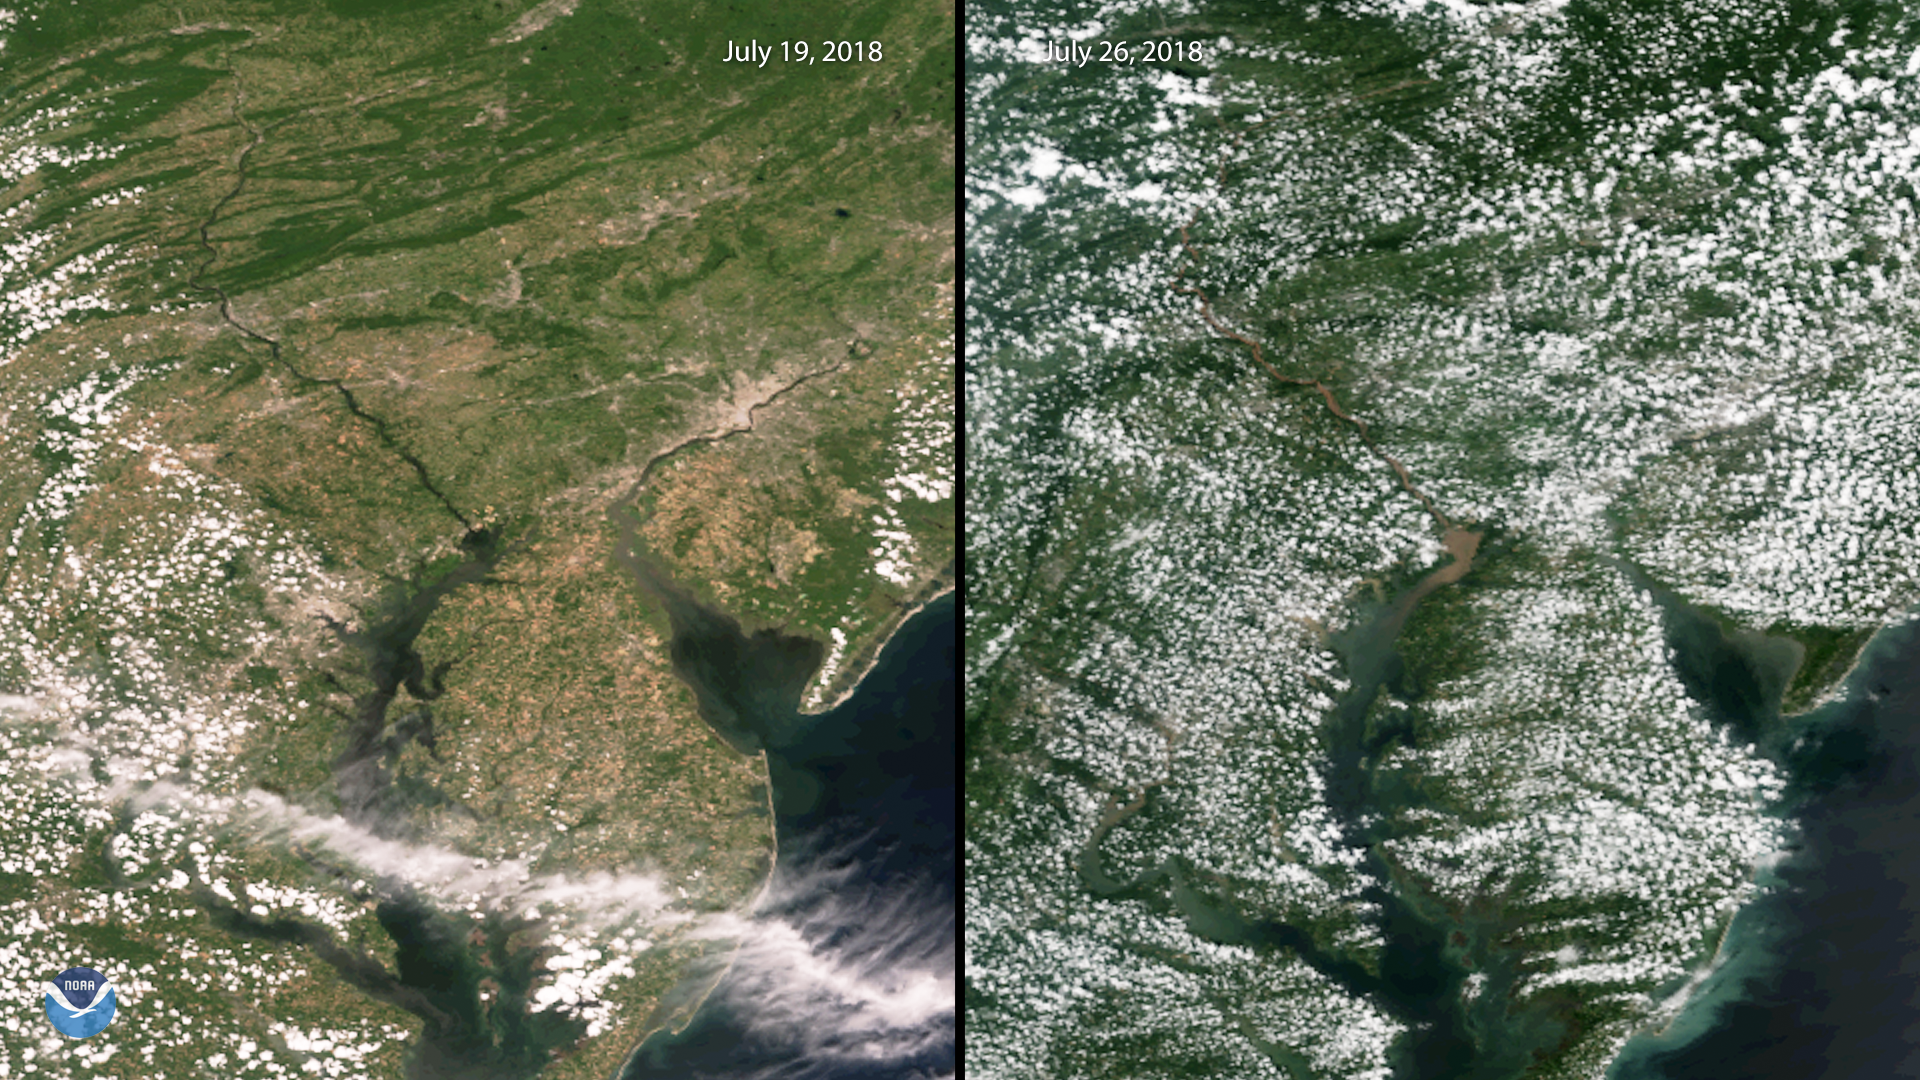 Sediment Plume in the Chesapeake Bay